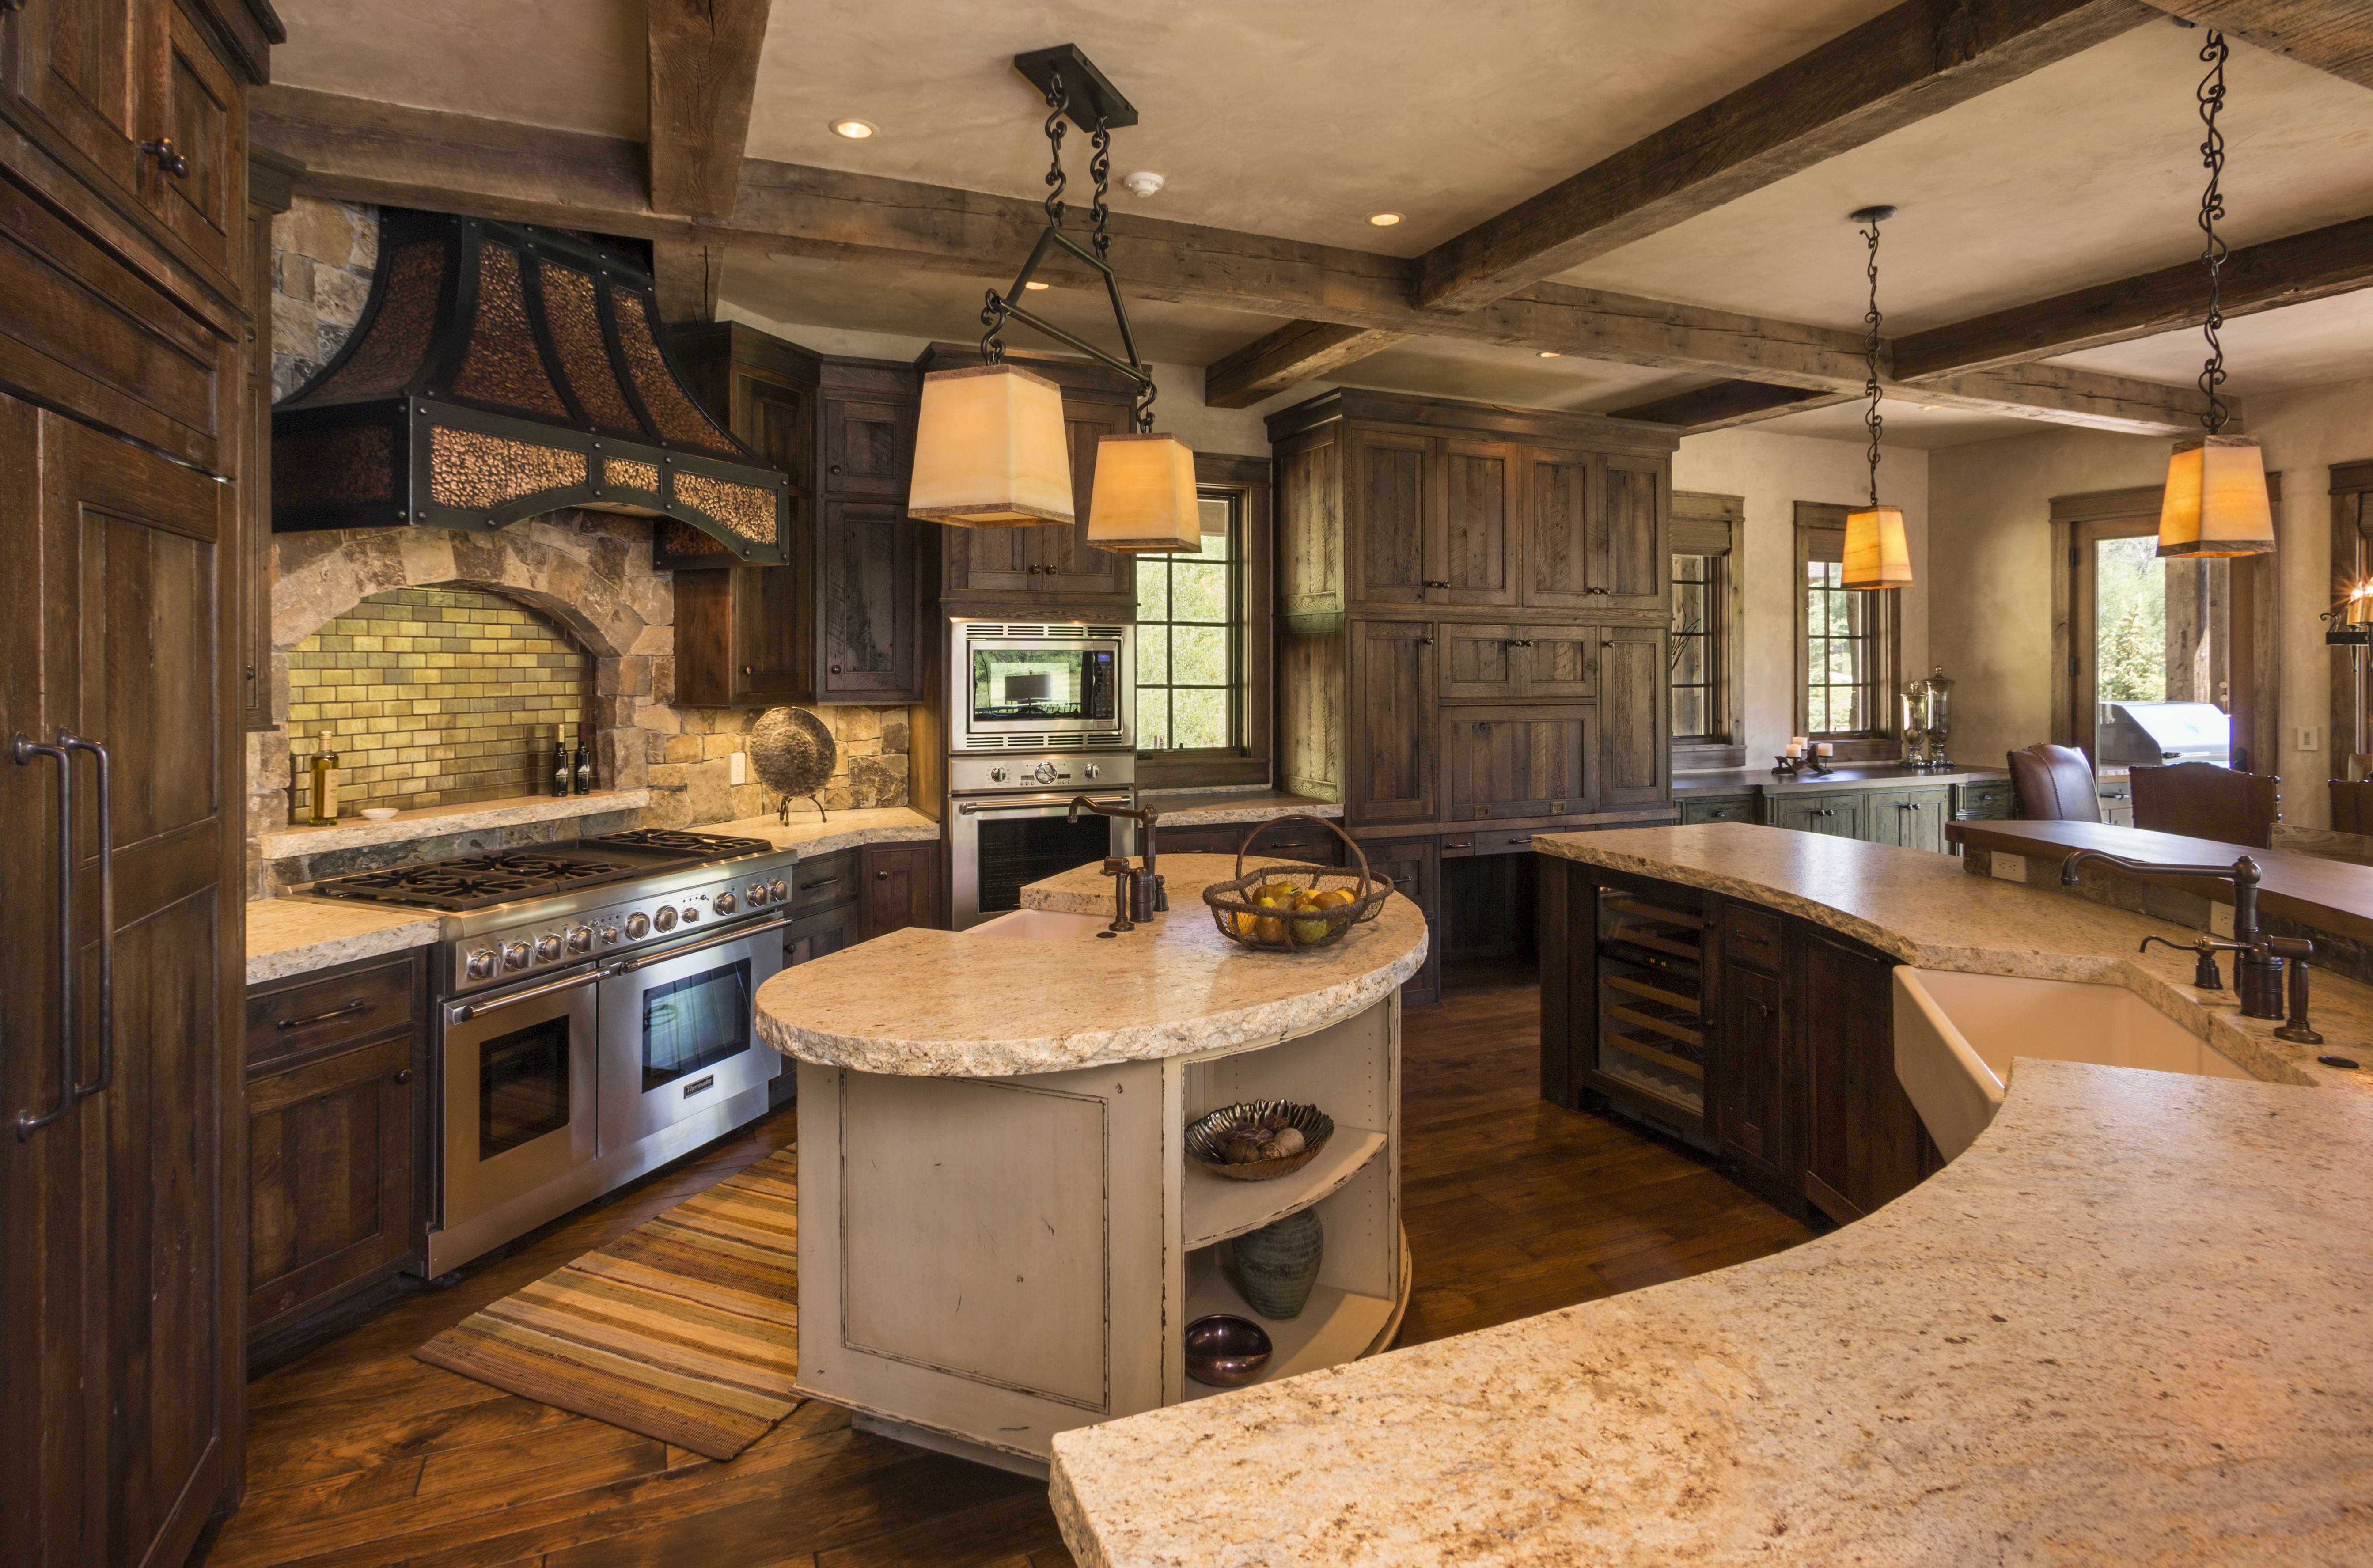 Rustic Cabinet Hardware Kitchen S